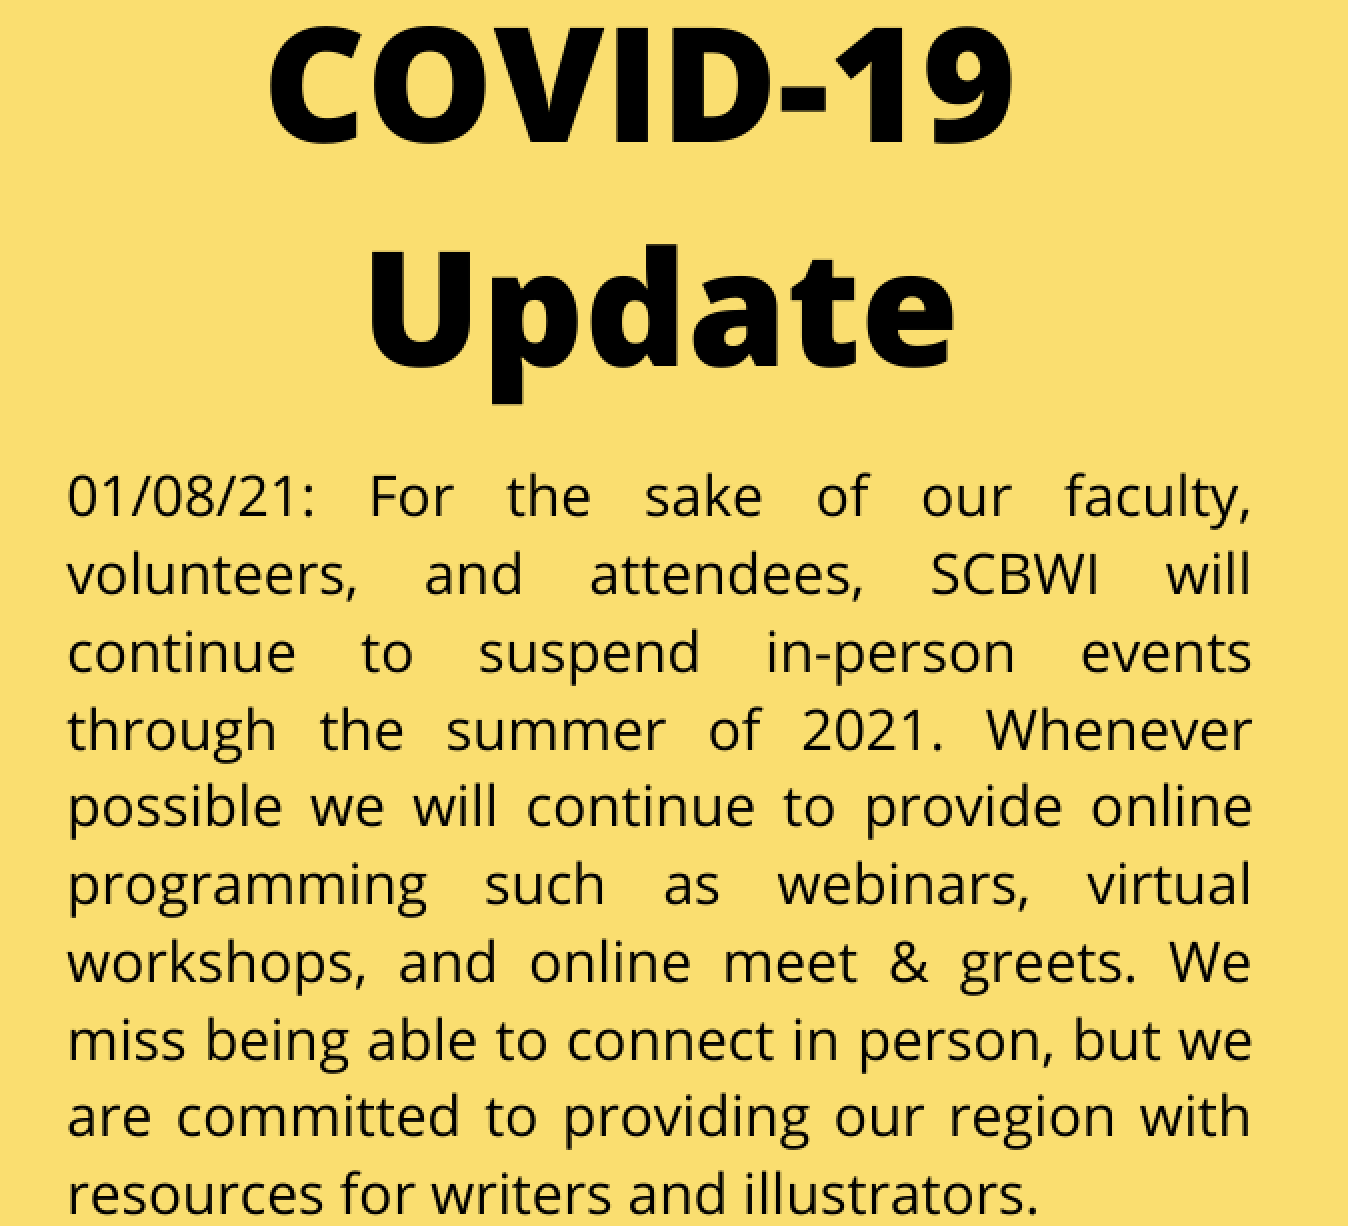 For the safety of our faculty, volunteers, and attendees, SCBWI has suspended in-person events through the summer of 2021. Wherever possible, we will continue to provide online programing, such as webinars, virtual workshops, and online meet & greets. We miss being able to connect in person, but we are committed to providing our region with resources for writers and illustrators.